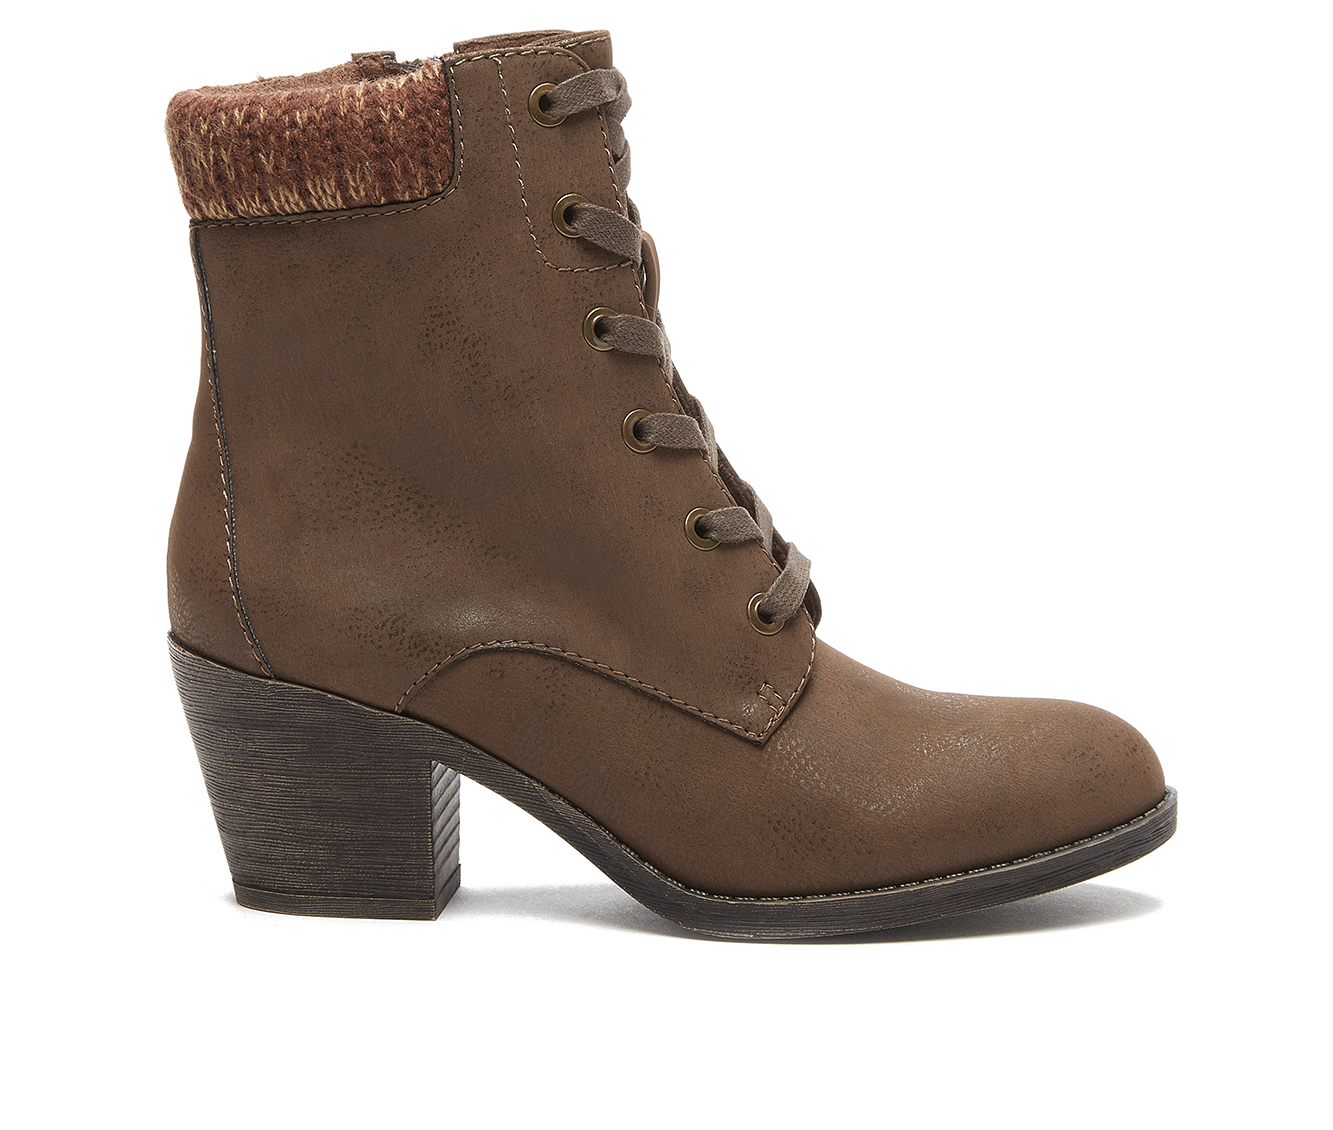 Rocket Dog Sherry Women's Boot (Brown Faux Leather)